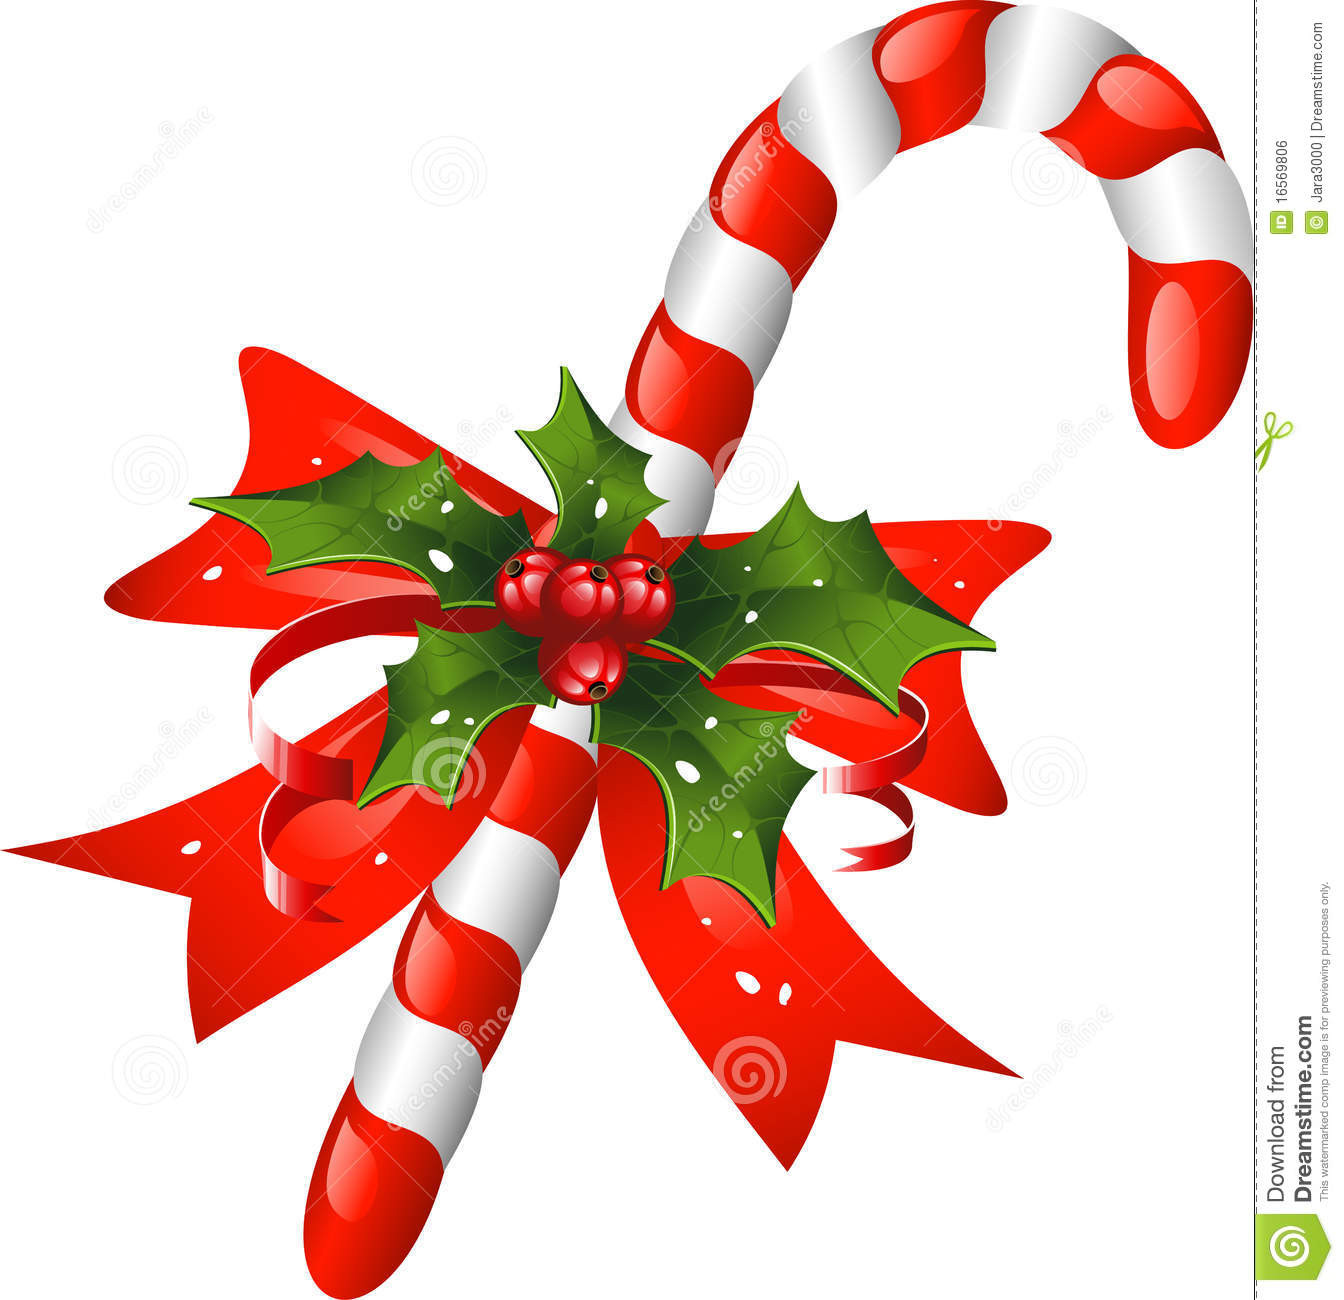 Christmas Candy Images  Christmas Candy Cane Decorated With A Bow And Holl Stock